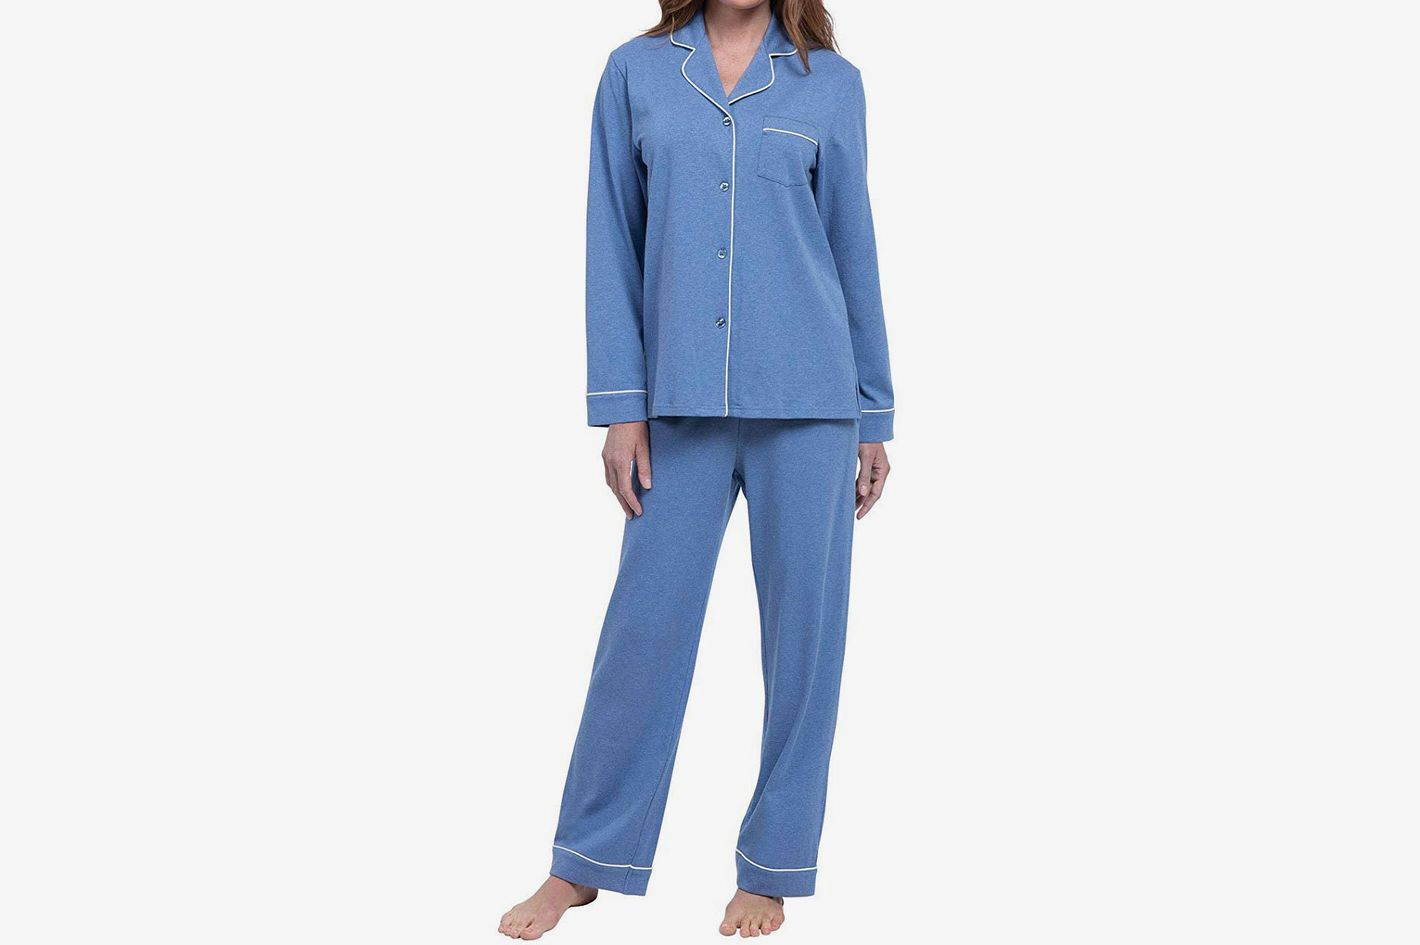 d2011629a727 PajamaGram Pajamas for Women - Cotton Jersey Womens Pajamas